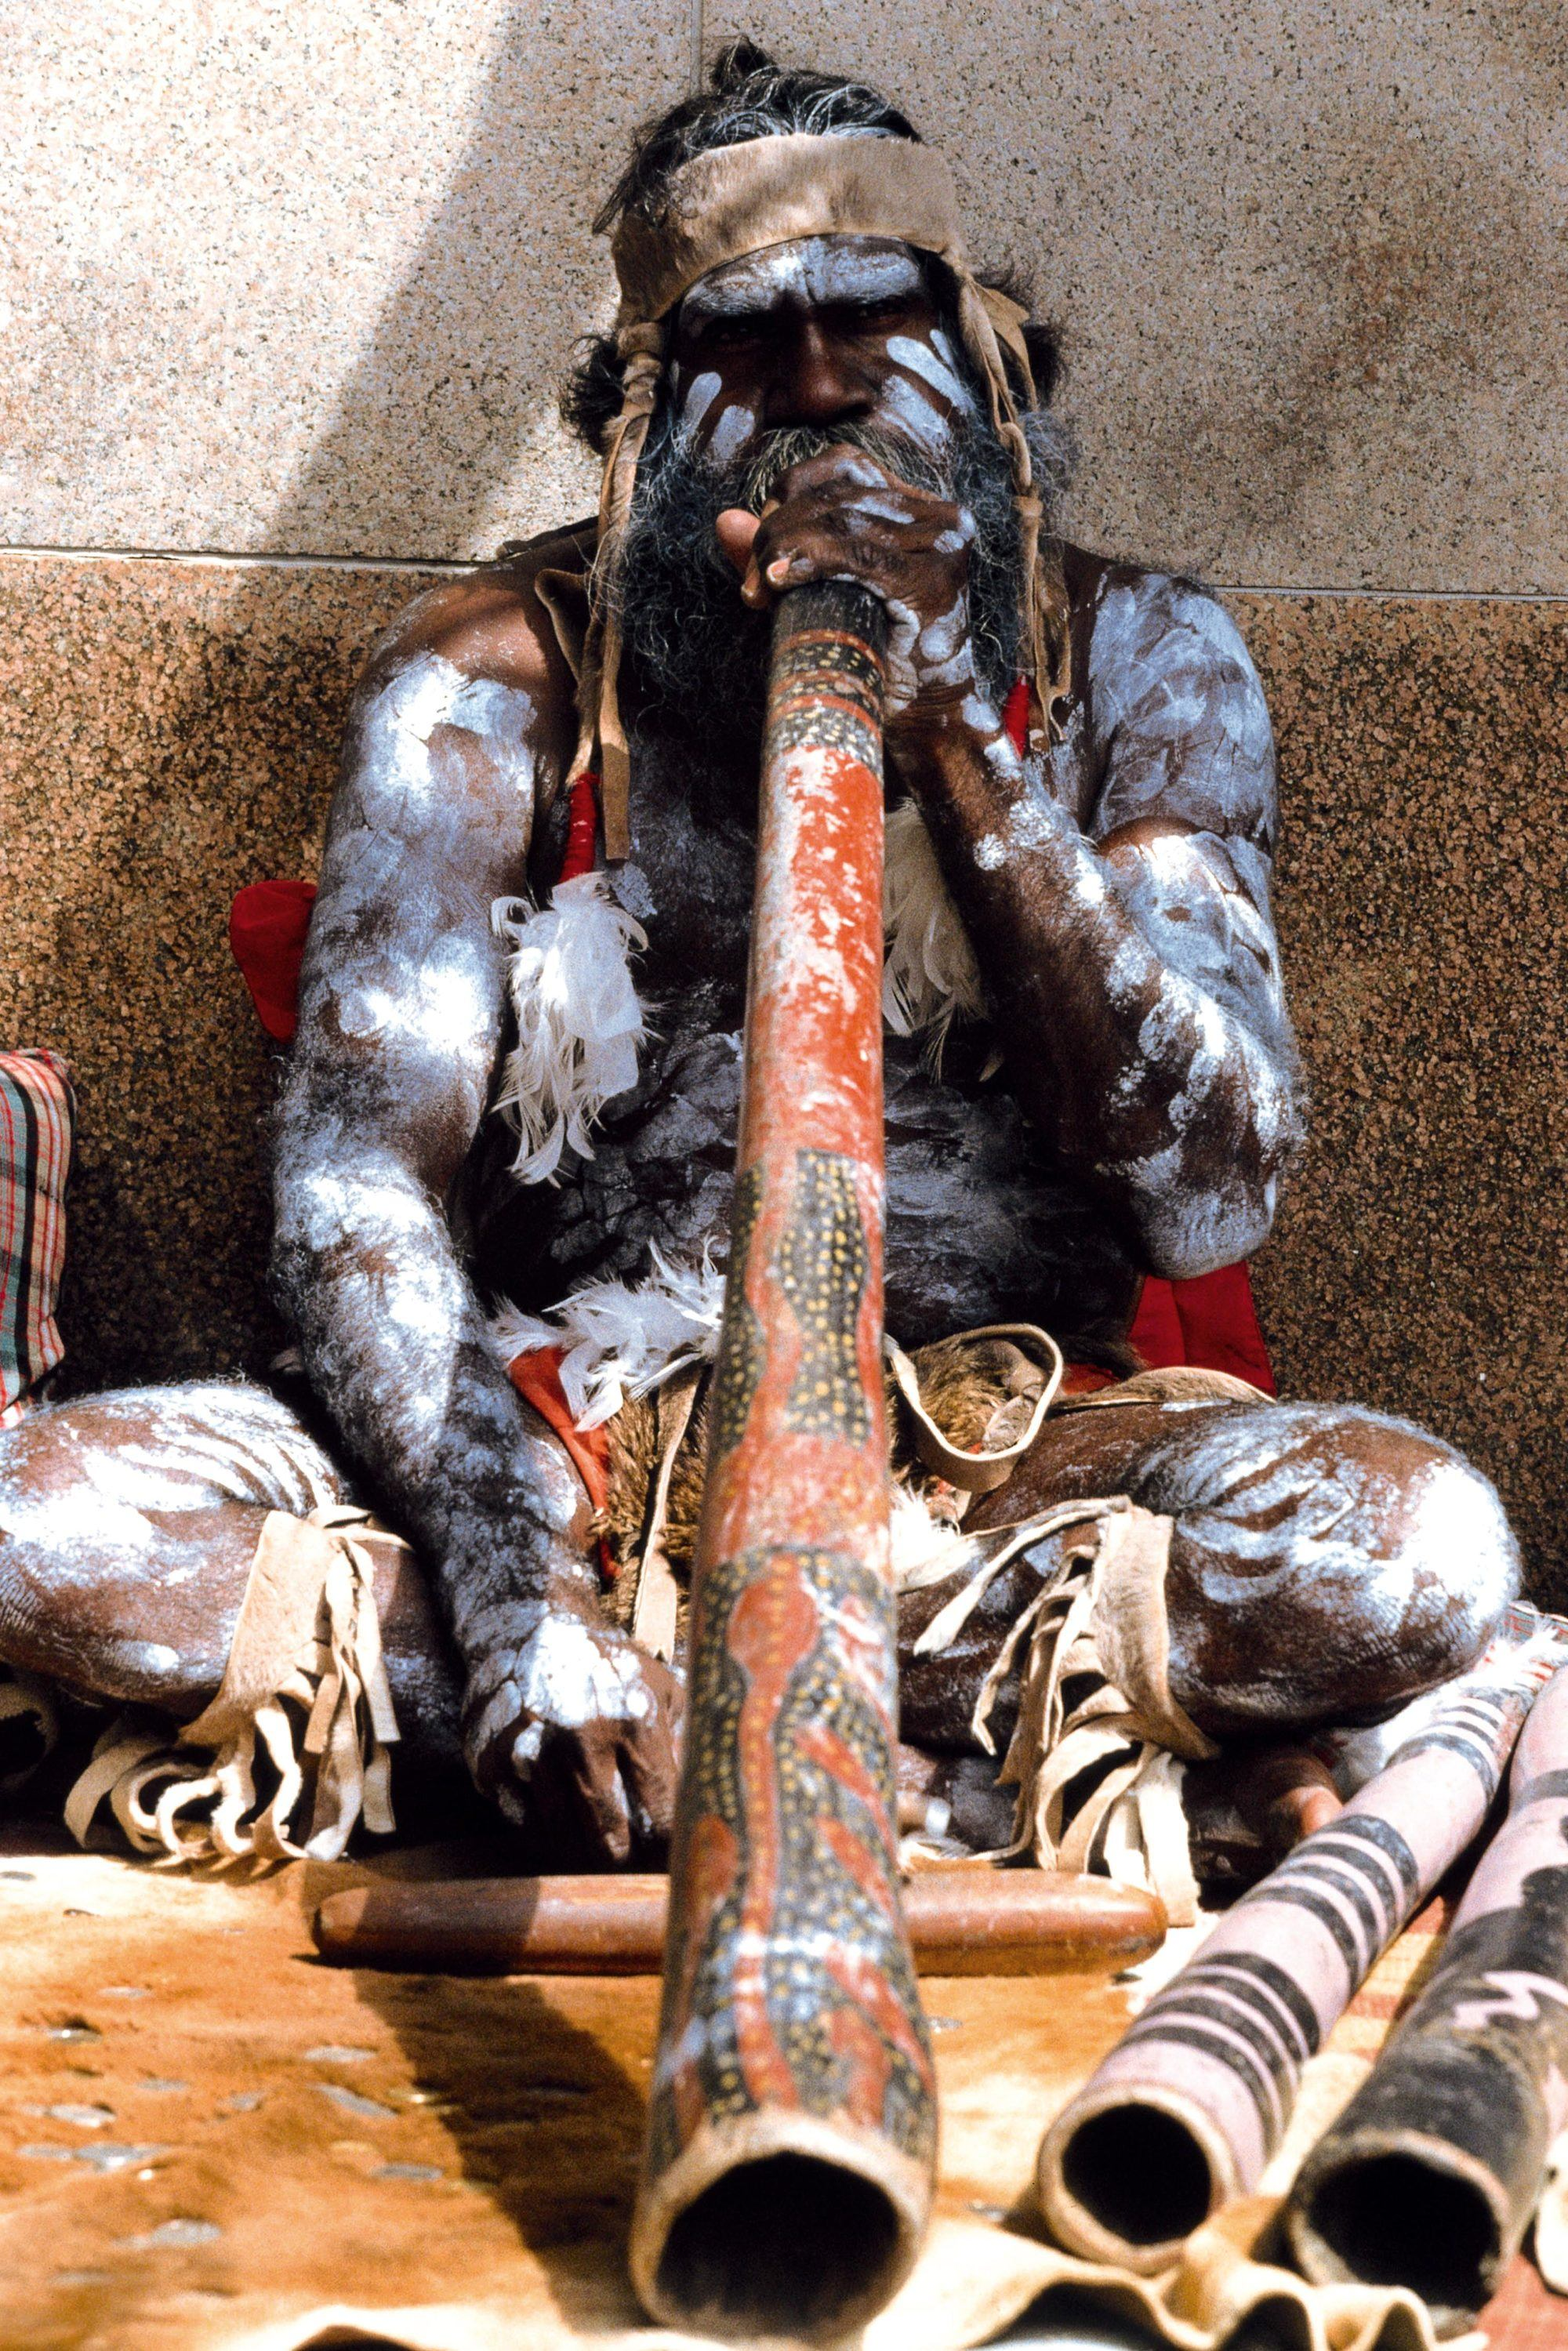 A didgeridoo player